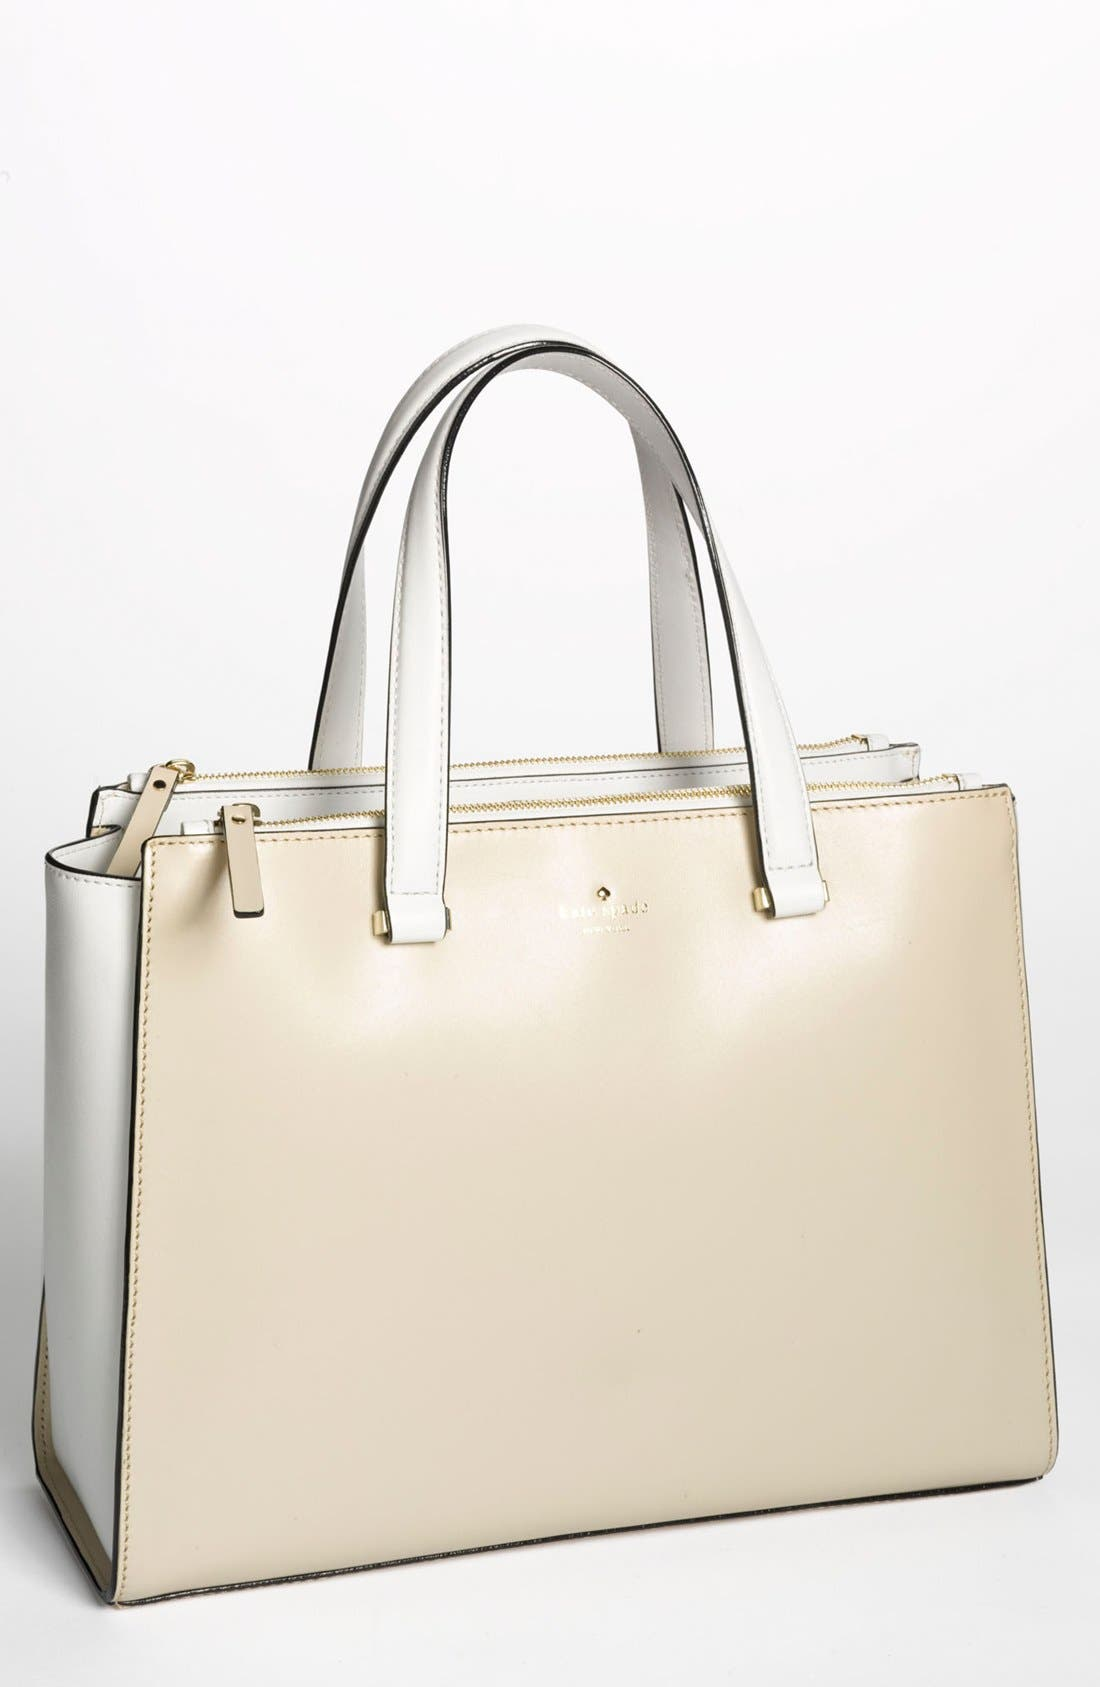 Alternate Image 1 Selected - kate spade new york 'battery park city - evalyn' leather tote